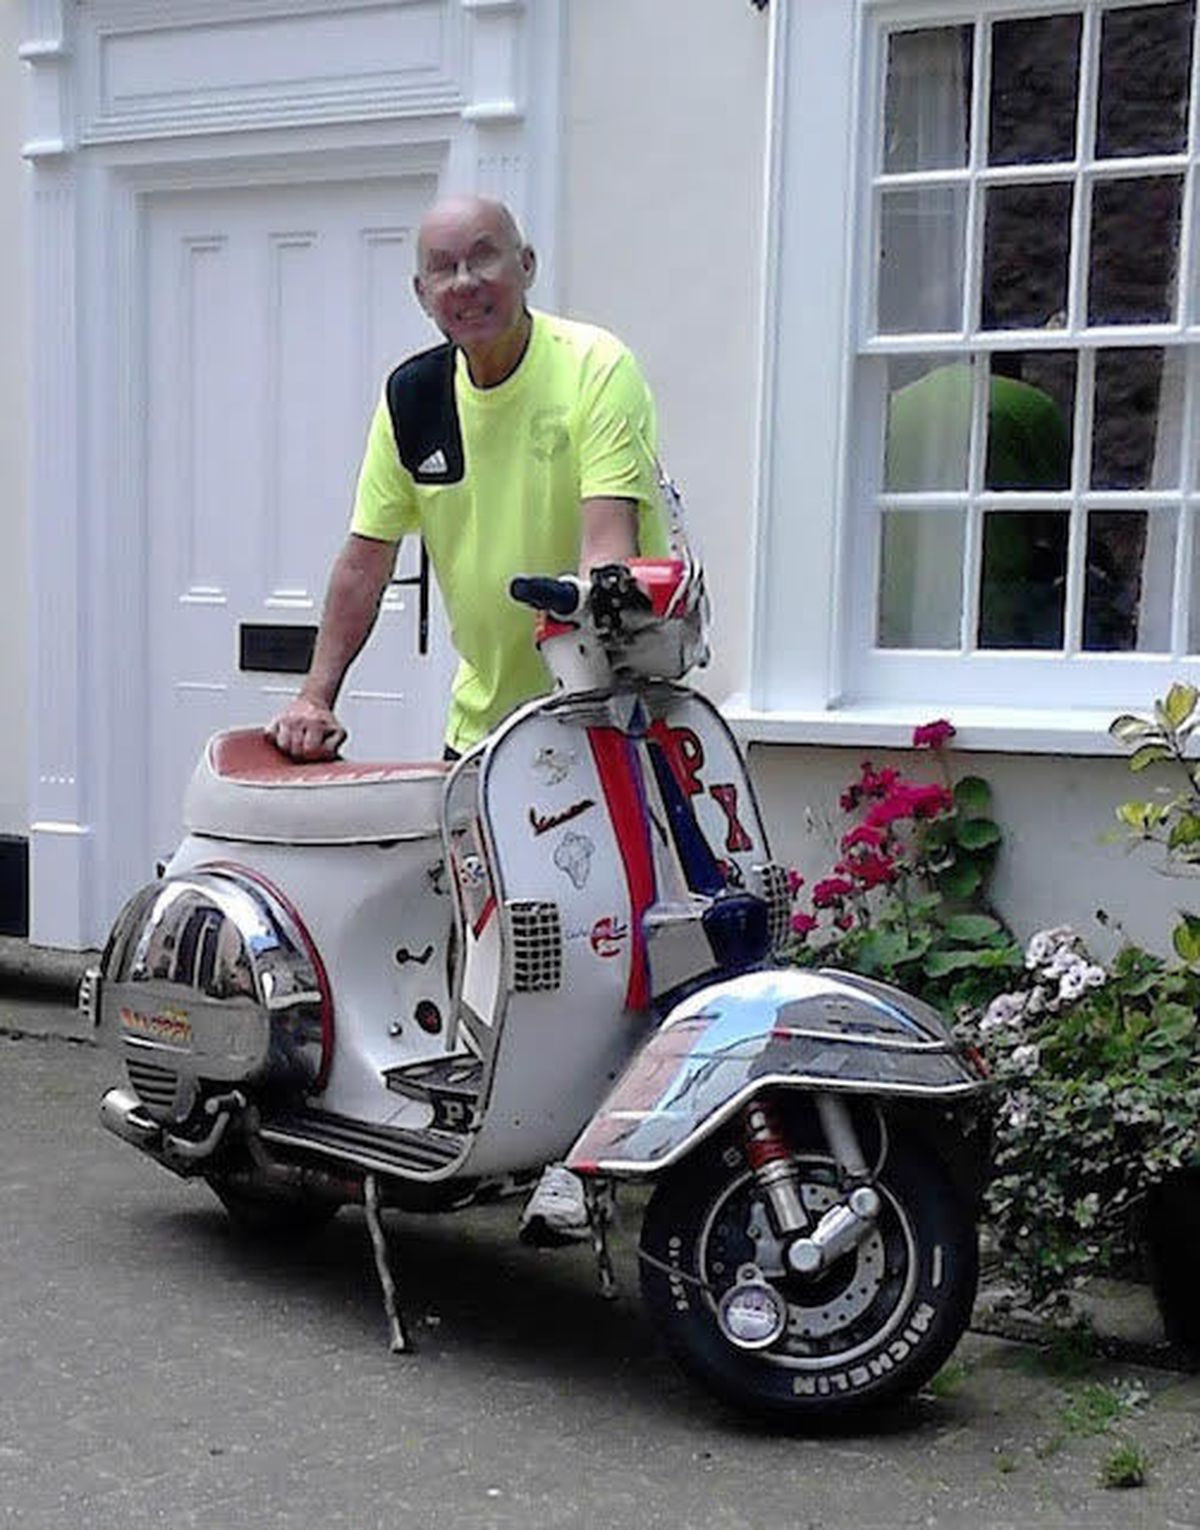 Kenny Barber poses with a Vespa in Tenby in 2011